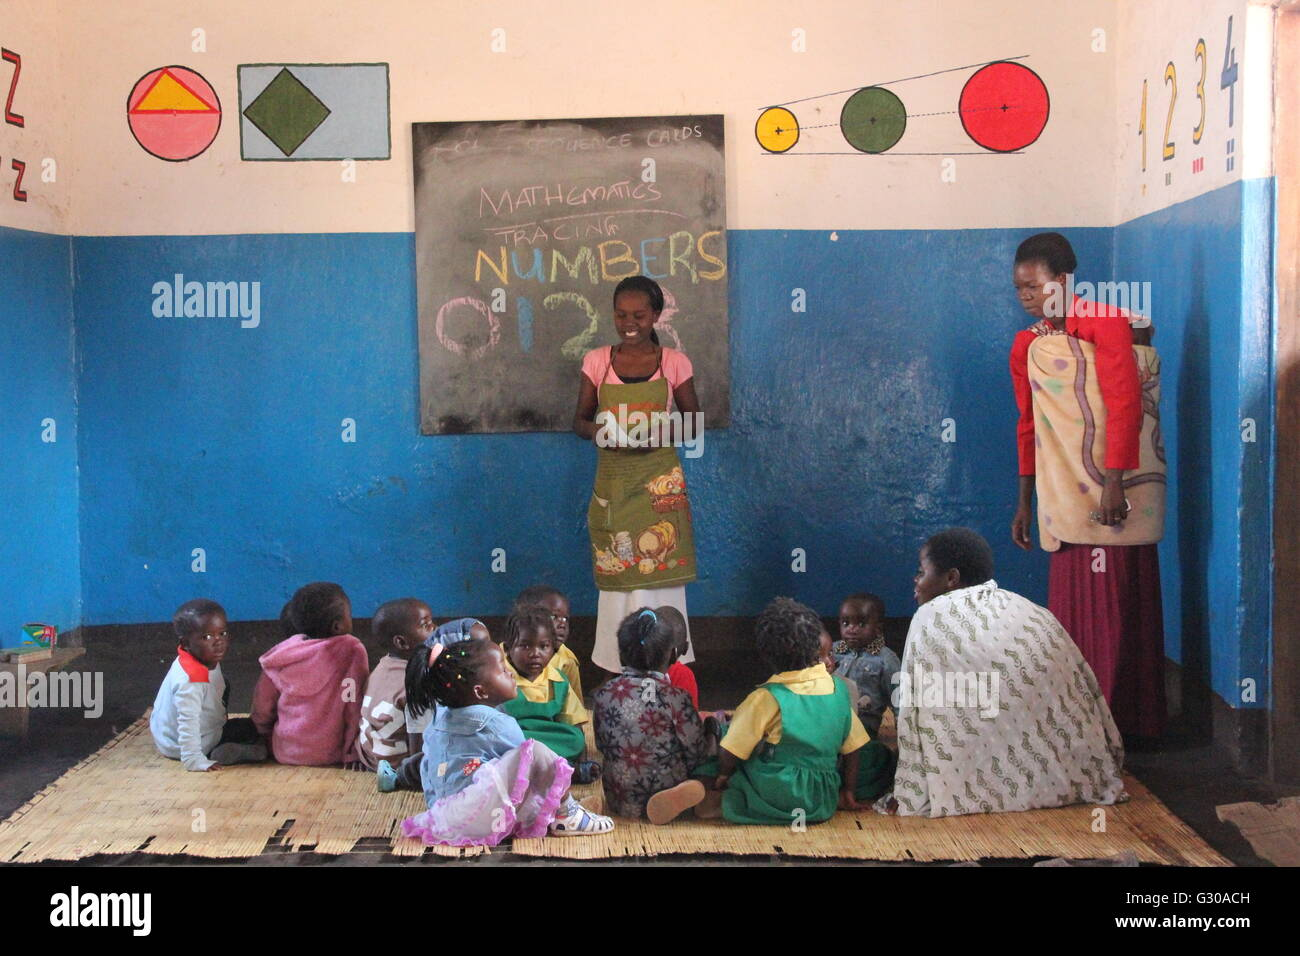 Small children and teacher, Malawi, Africa - Stock Image